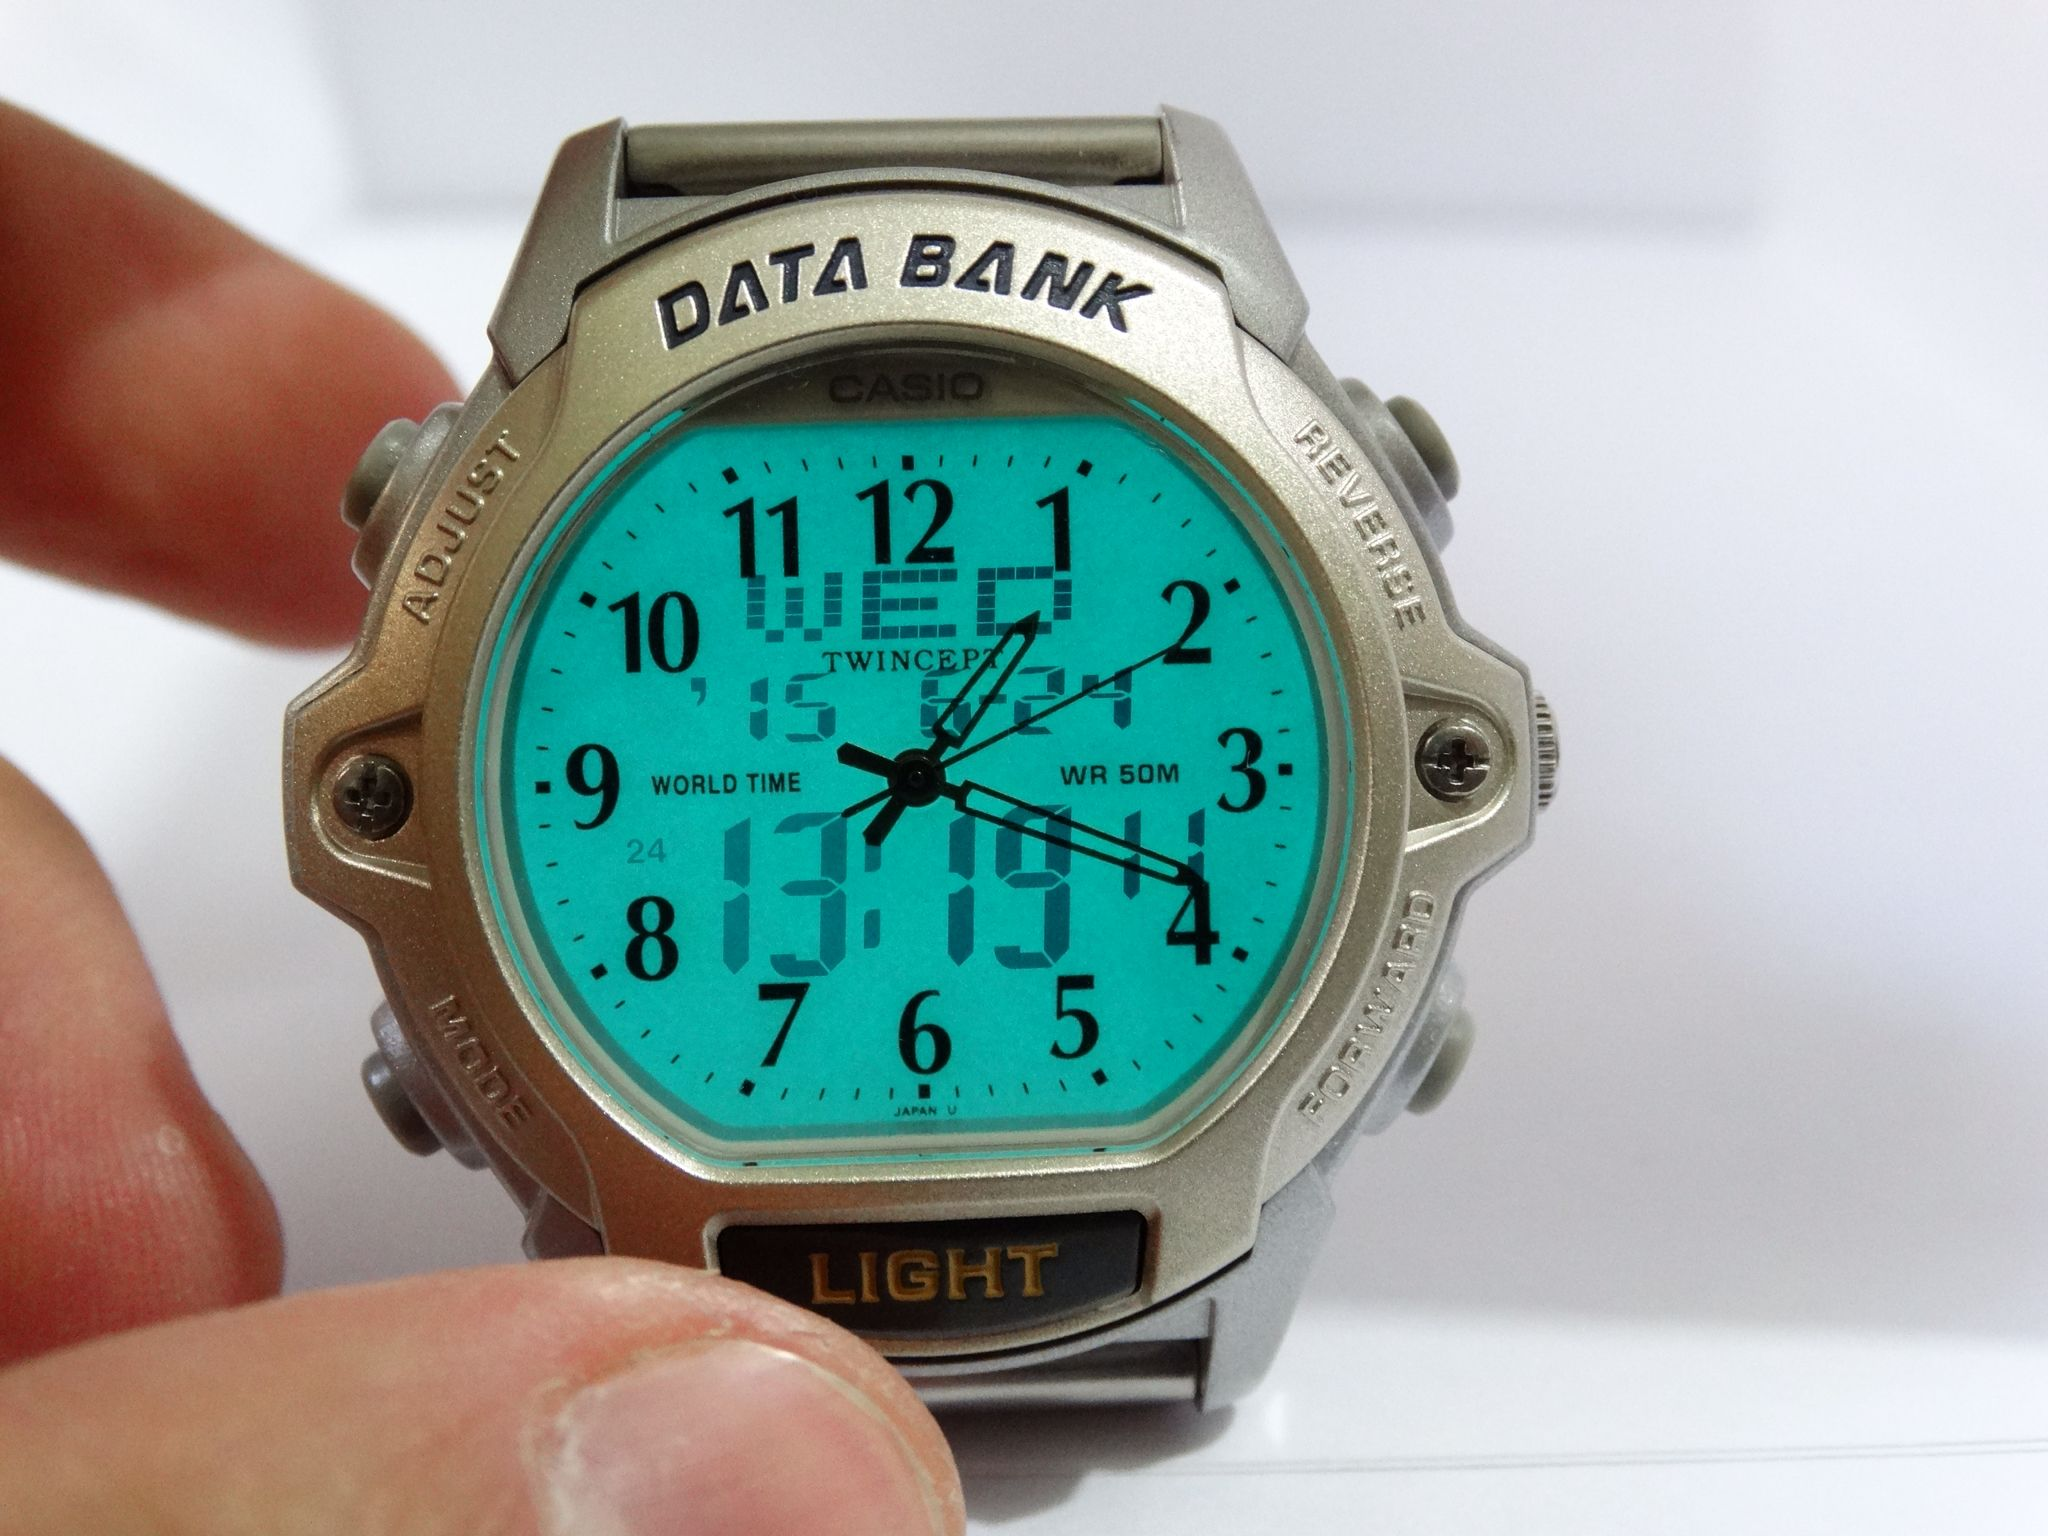 Abx Casio Databank In 24 Twincept Watch 30Clockwork 2019 0N8yOvnwm